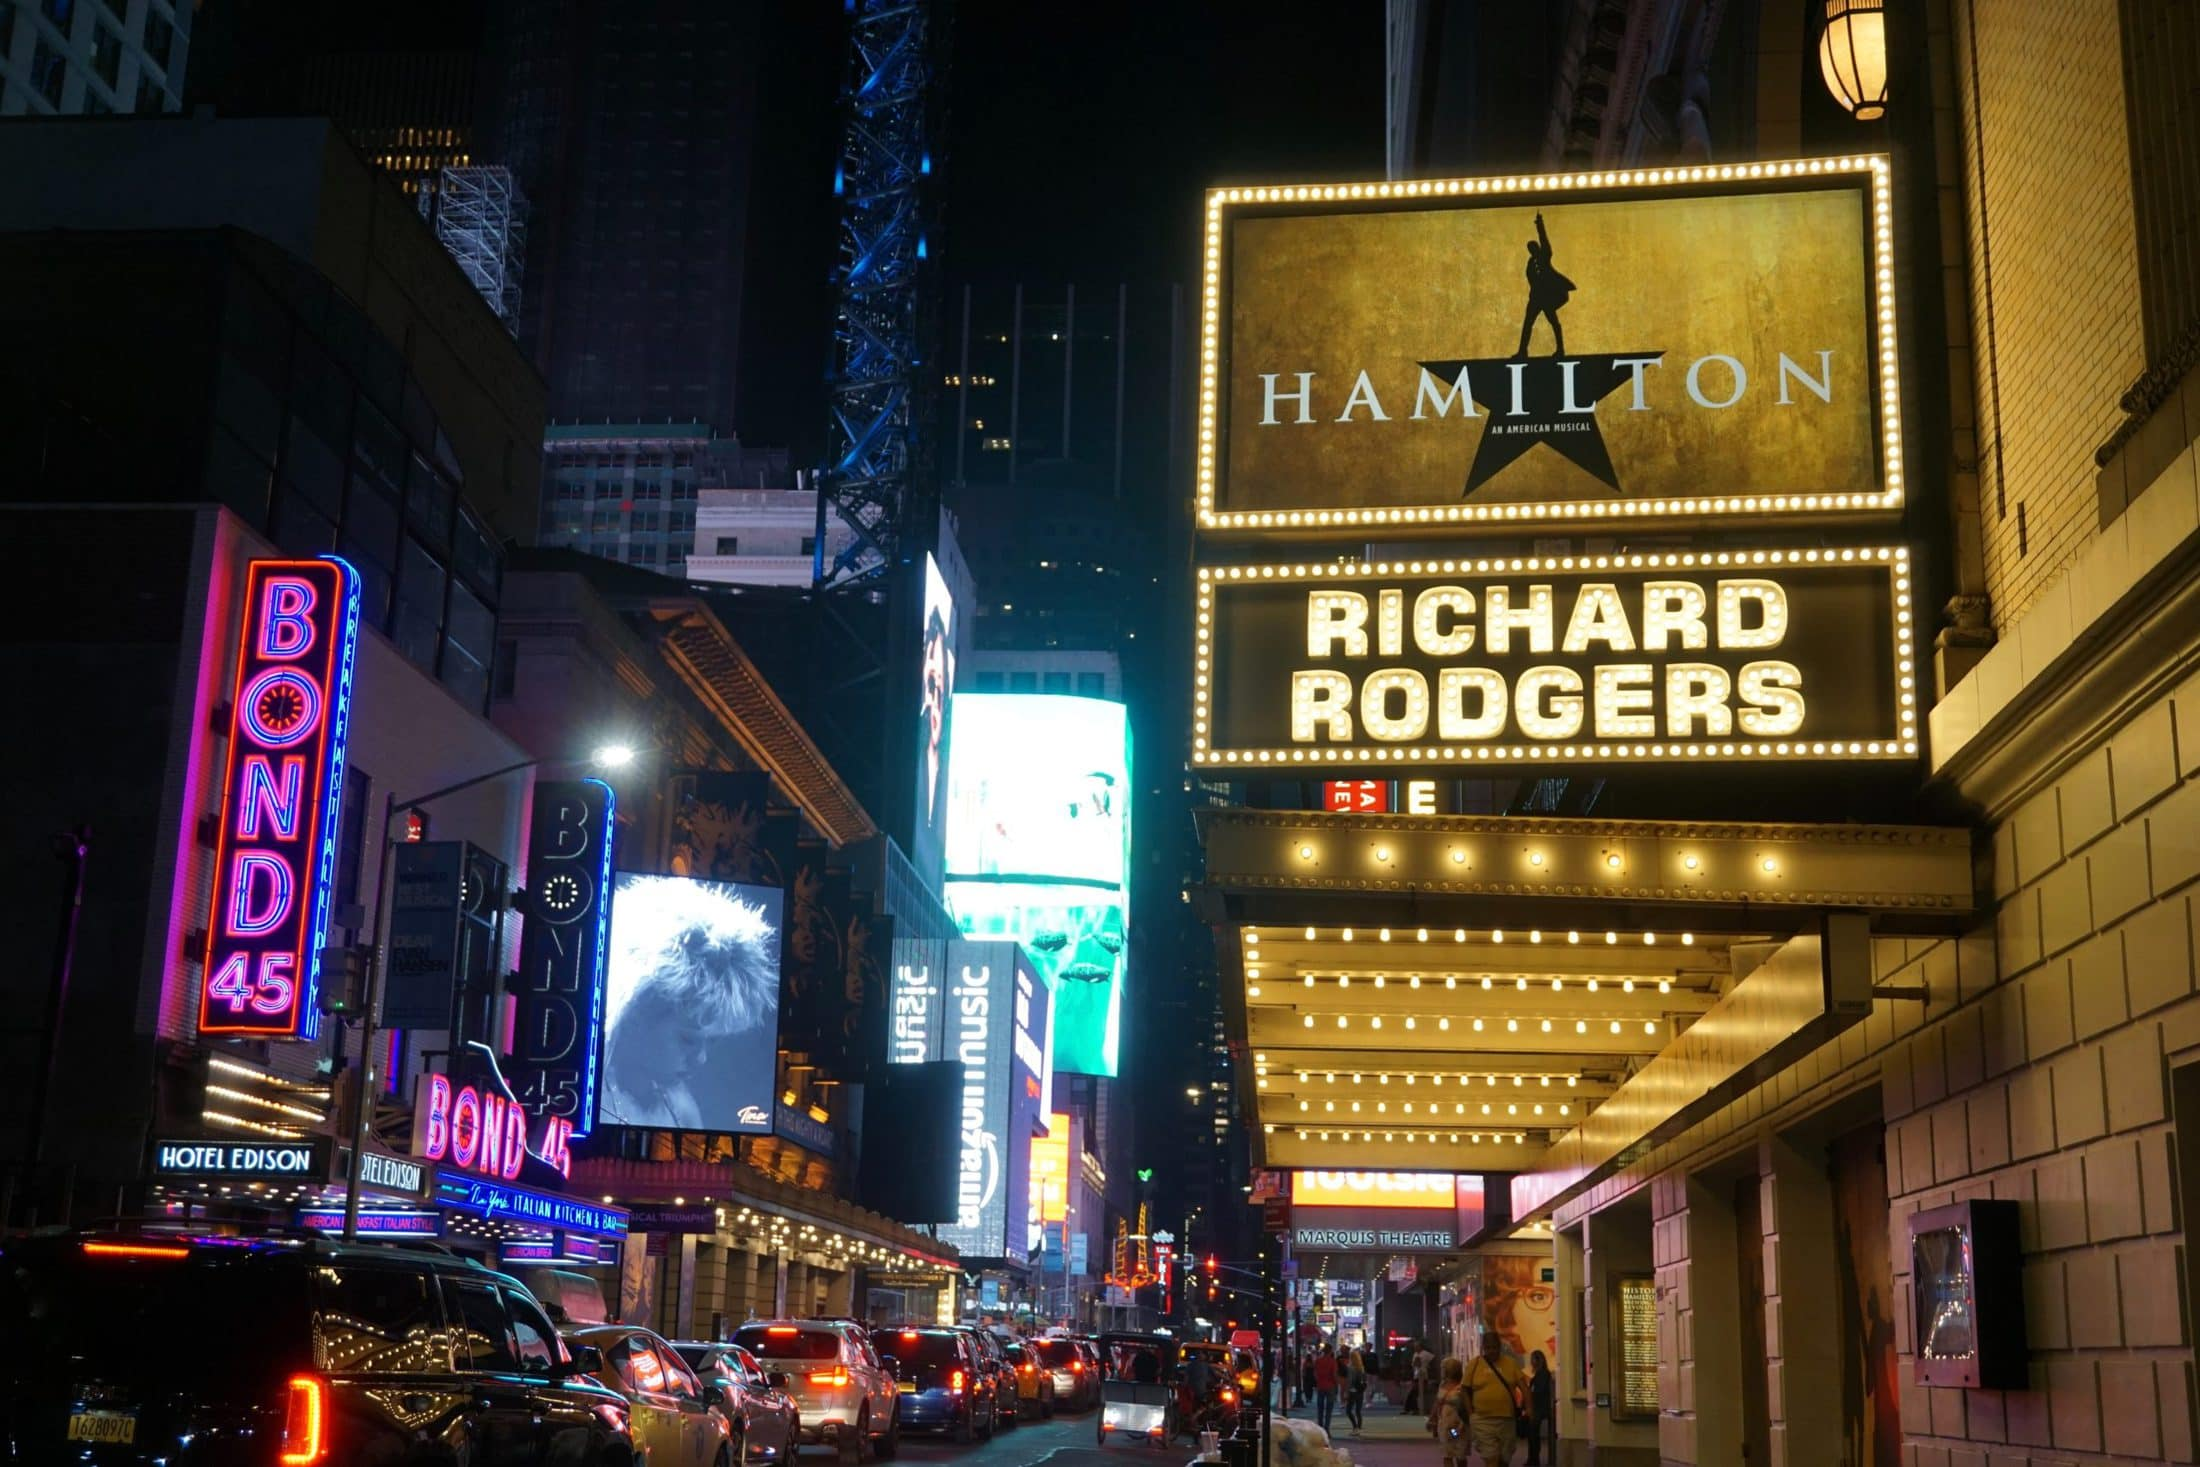 Hamilton Richard Rodgers signage